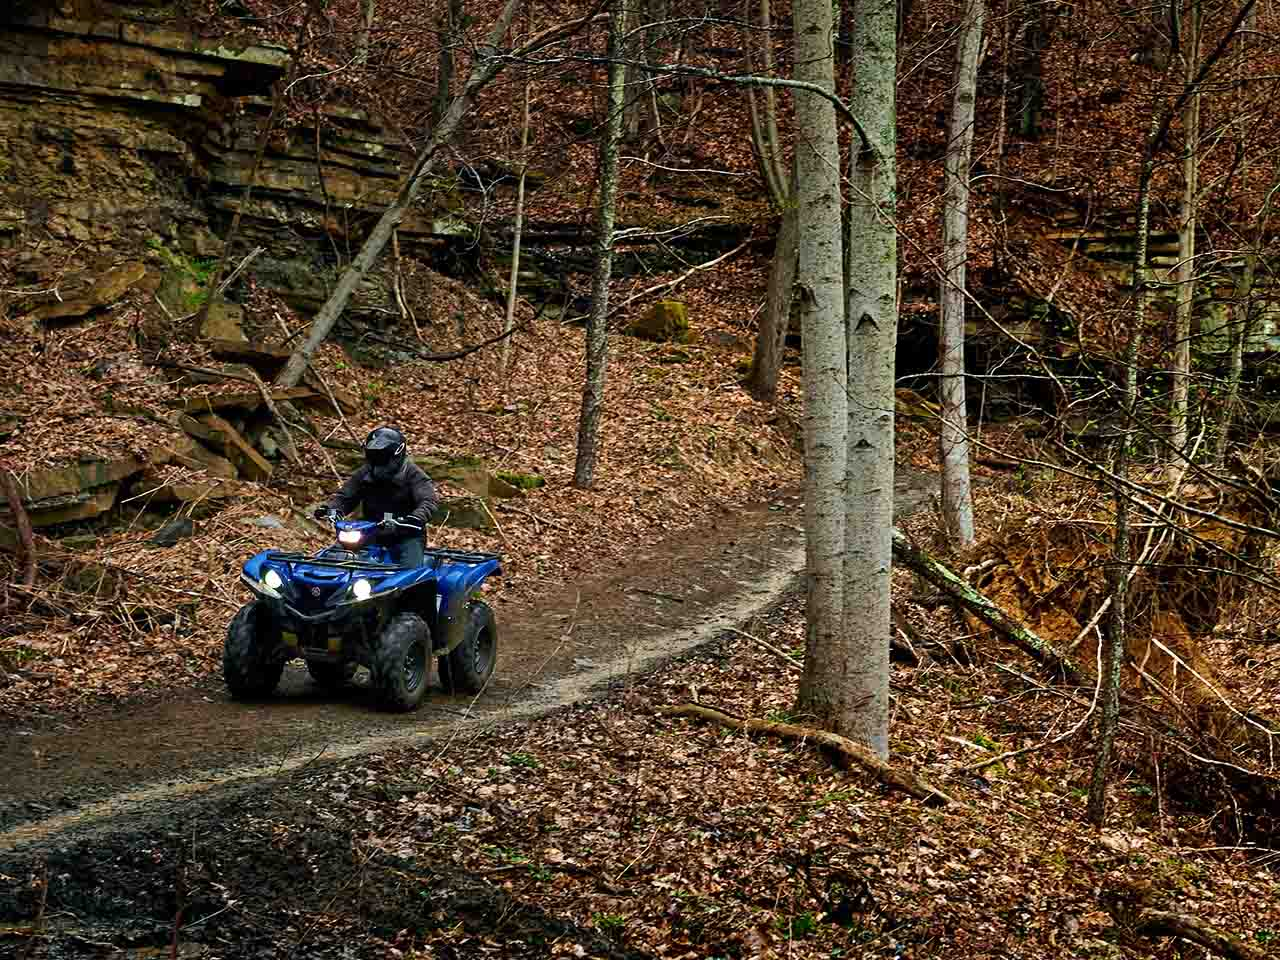 2019 Yamaha Grizzly 700 Gallery 3